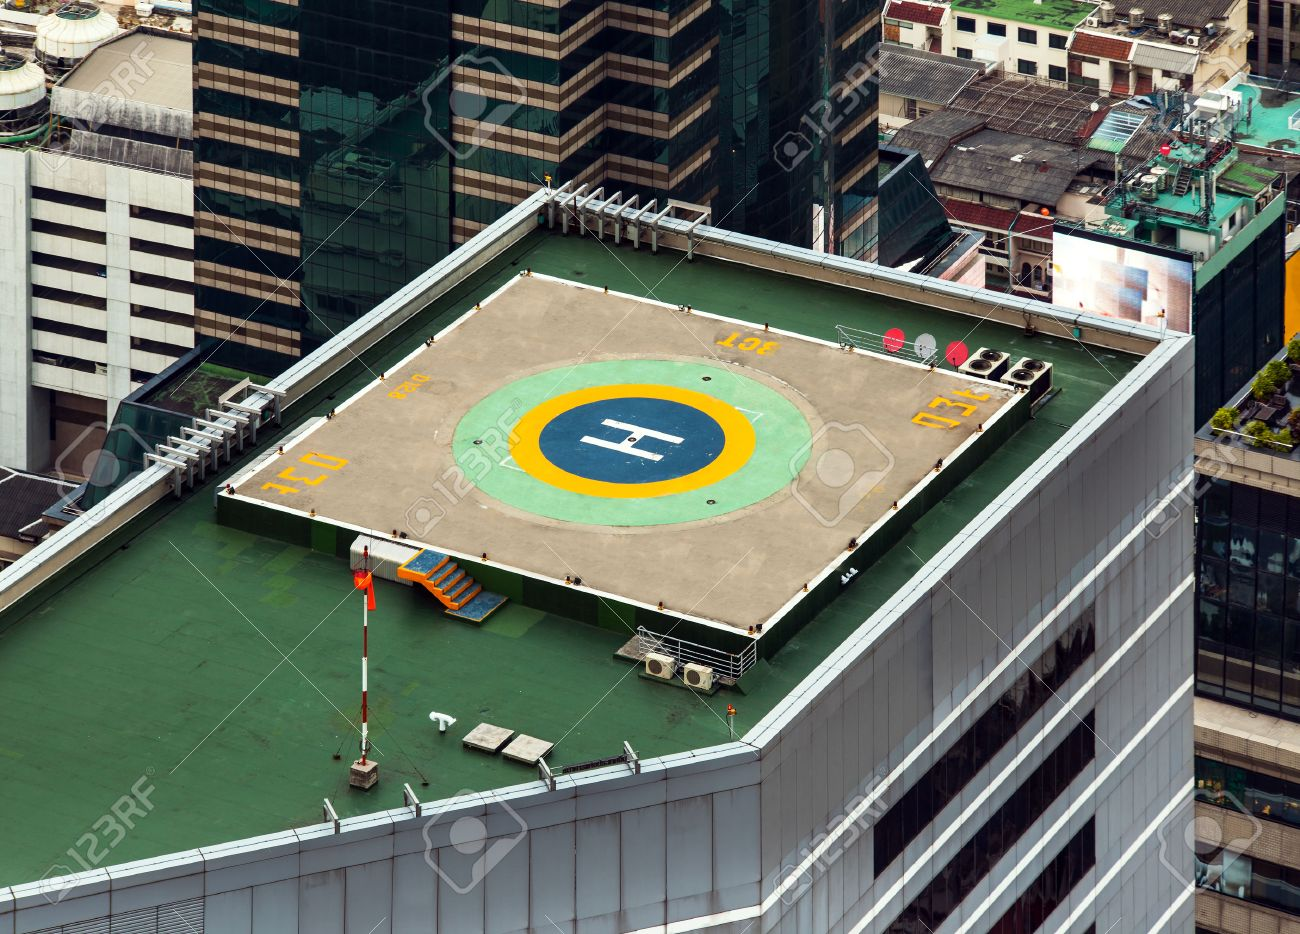 Helipad Helicopter landing pad on roof top building Helicopter landing pad on roof top building in Bangkok, Thailand - 24632370